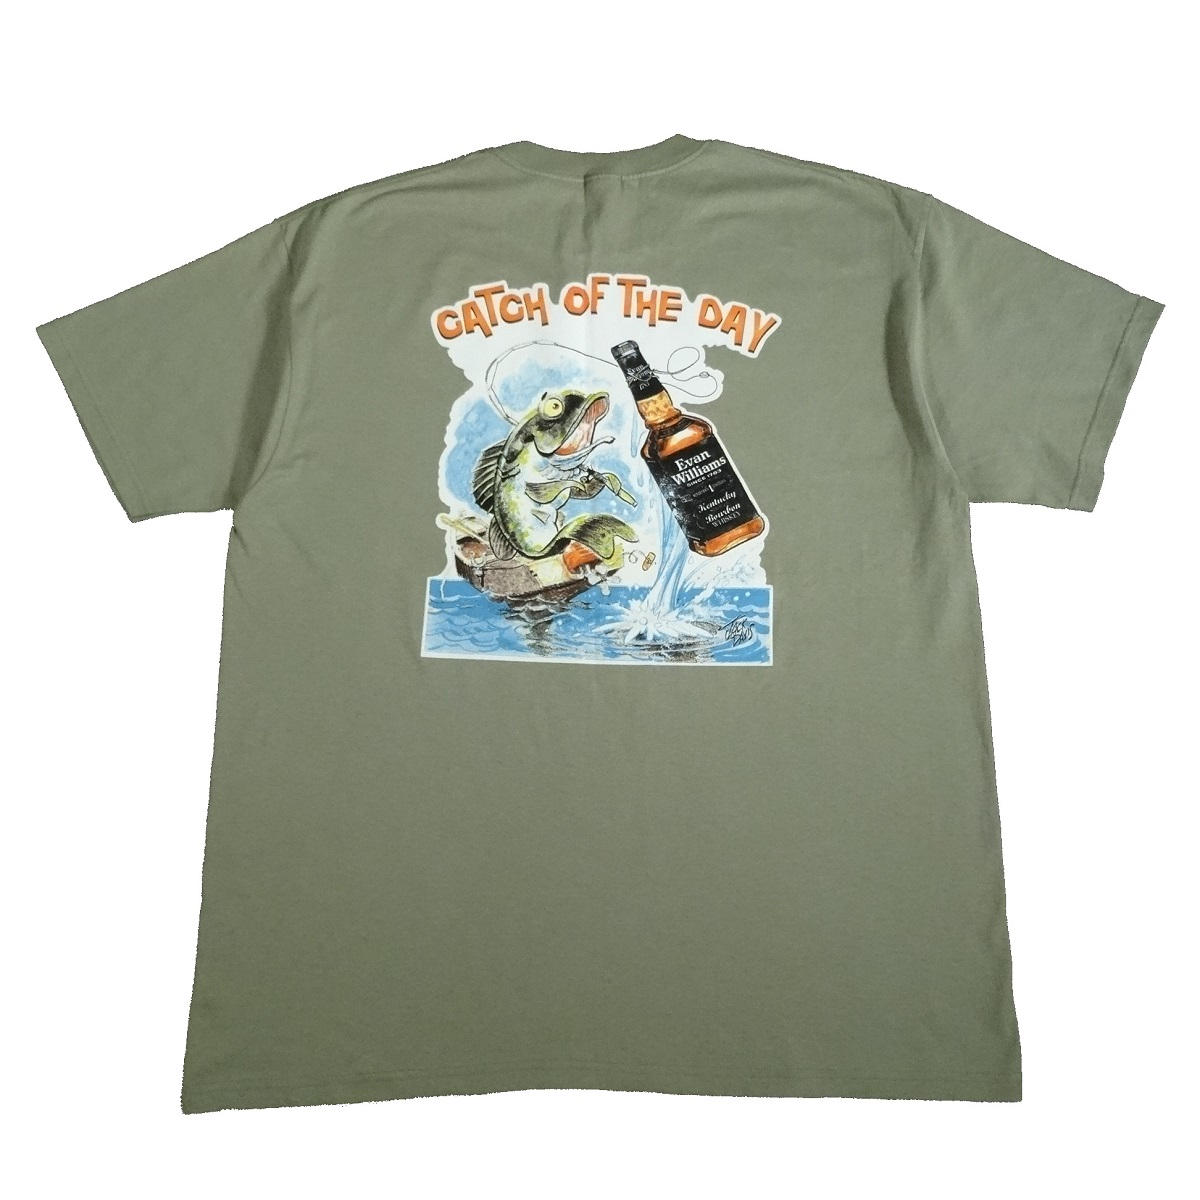 evan williams bourbon catch of the day vintage t shirt back